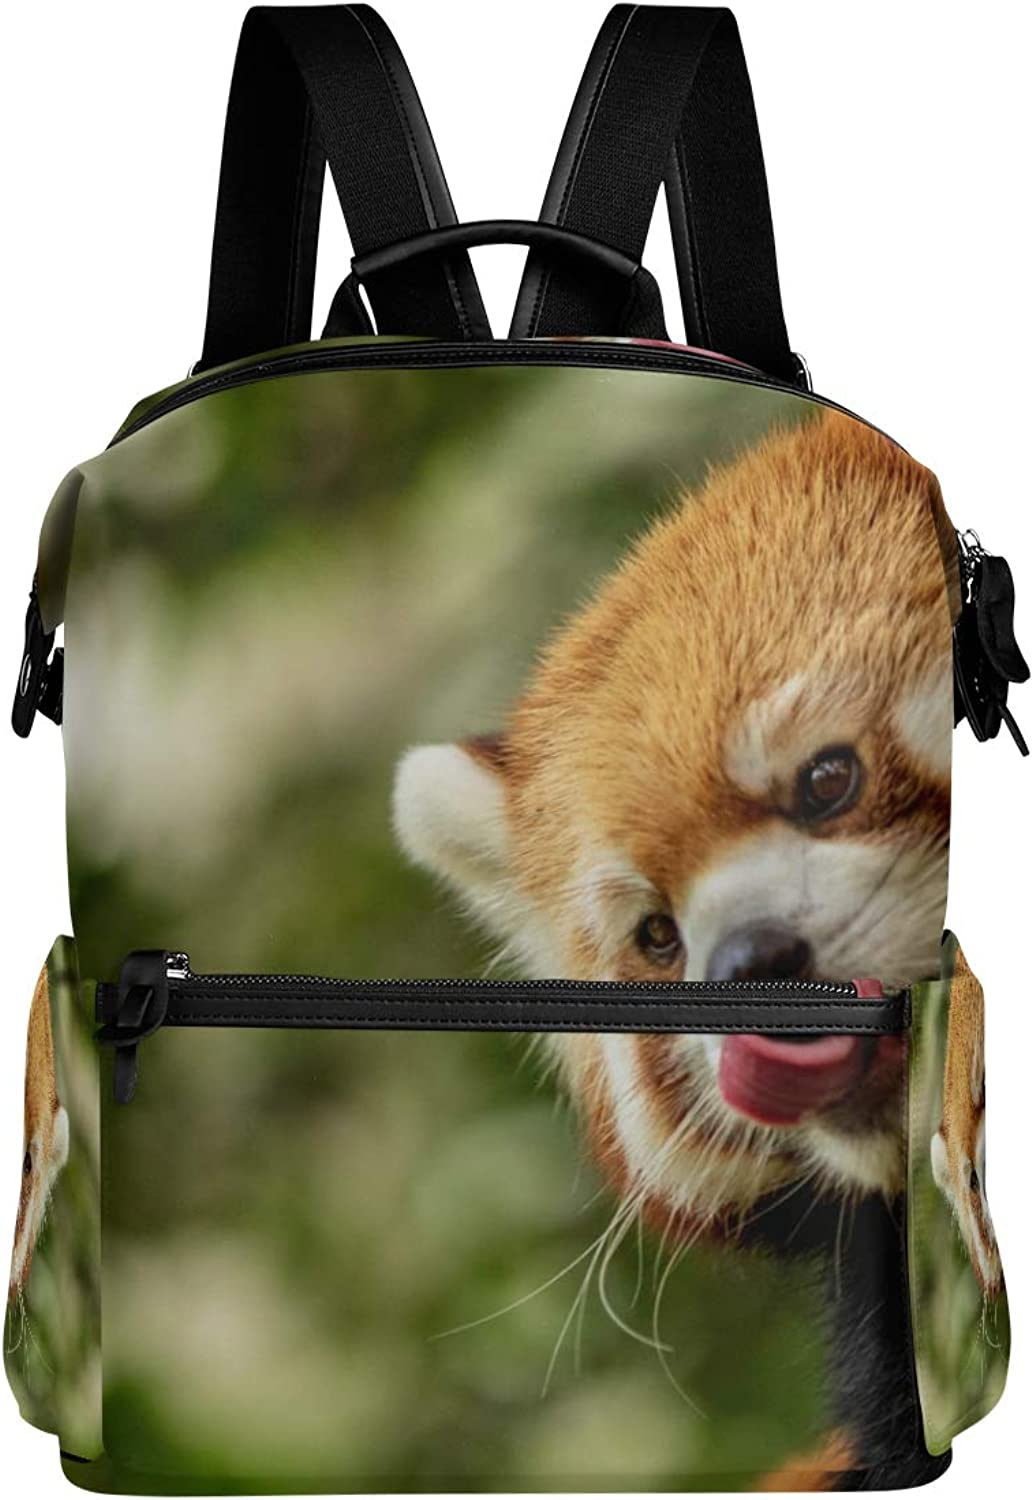 MONTOJ Raccoon Lips with Tongue Leather Travel Bag Campus Backpack